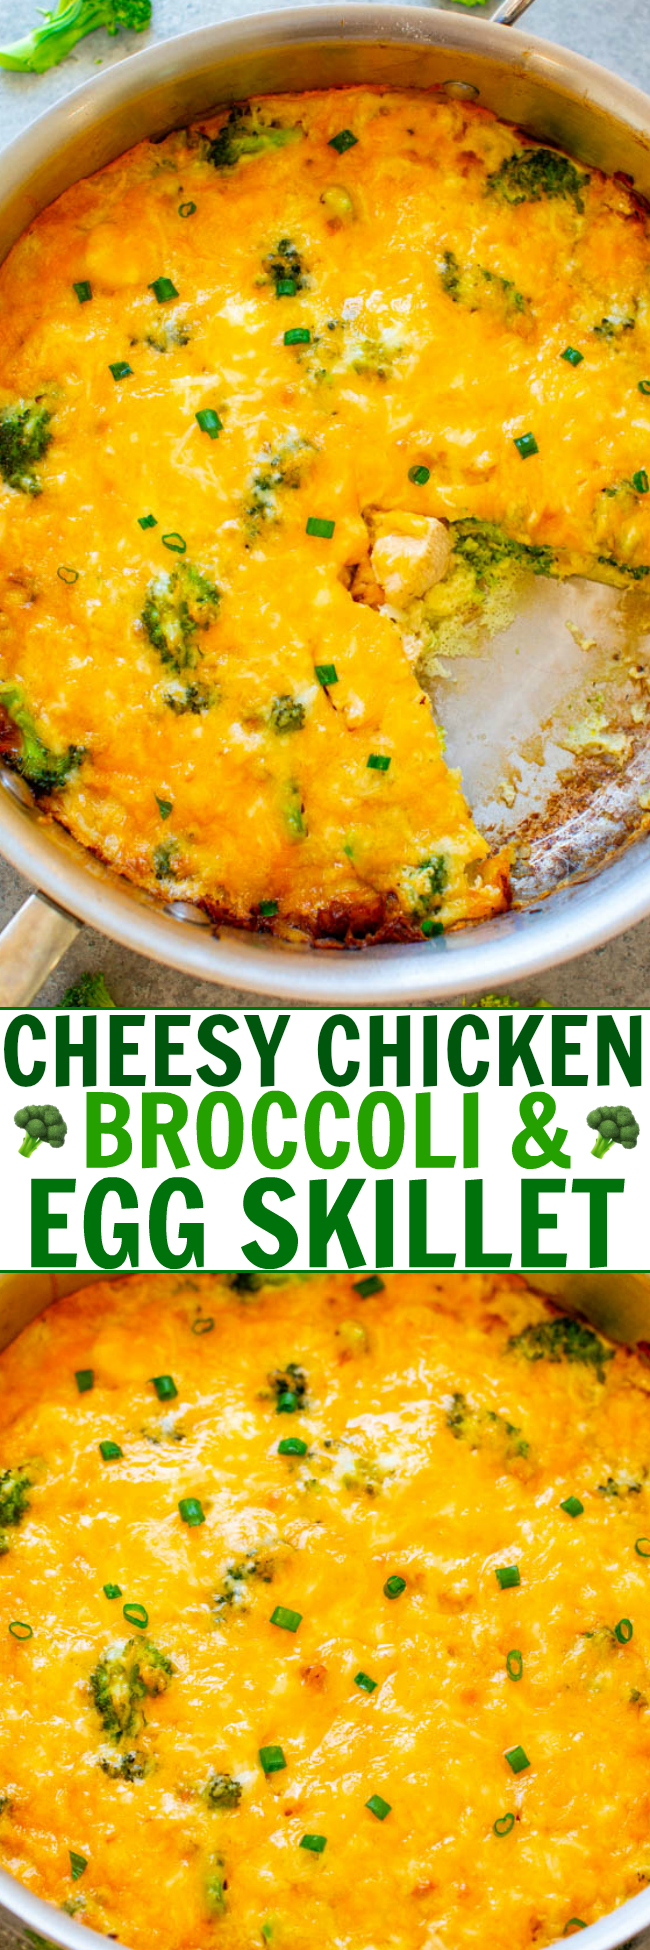 Cheesy Chicken, Broccoli, and Egg Skillet - A healthy-ish brunch, lunch, or breakfast-for-dinner recipe that combines juicy chicken, crisp-tender broccoli, eggs, and melted cheese!! EASY and ready in 30 minutes!!